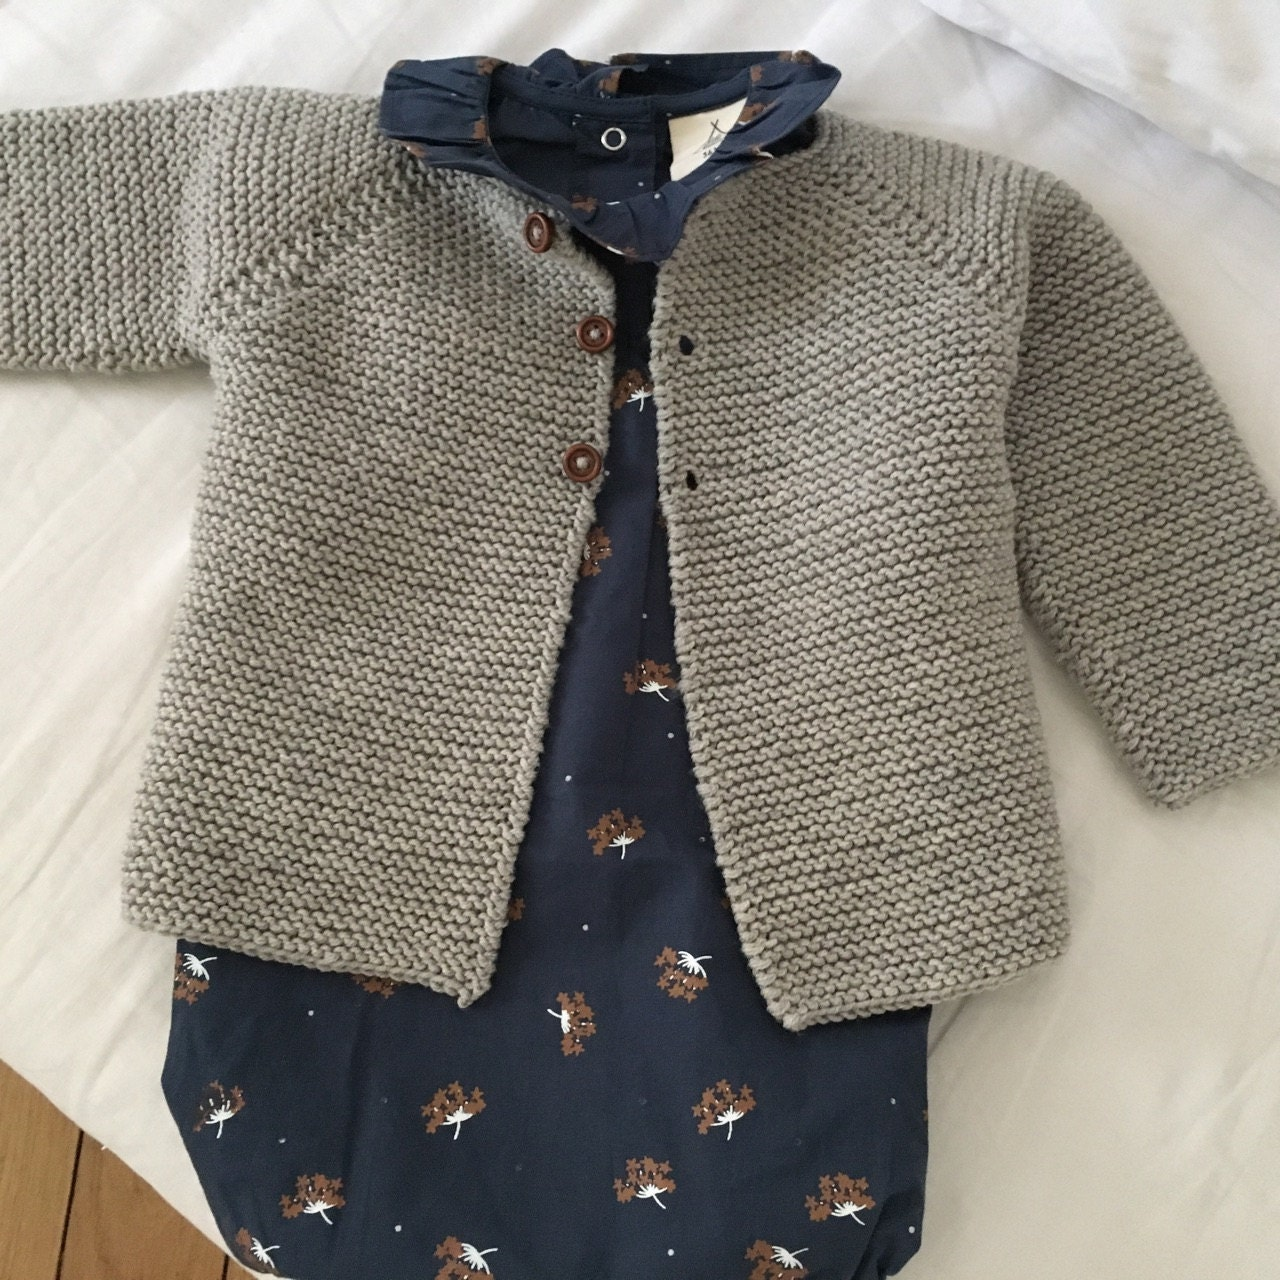 Emmanuelle Blondin-Jannel added a photo of their purchase